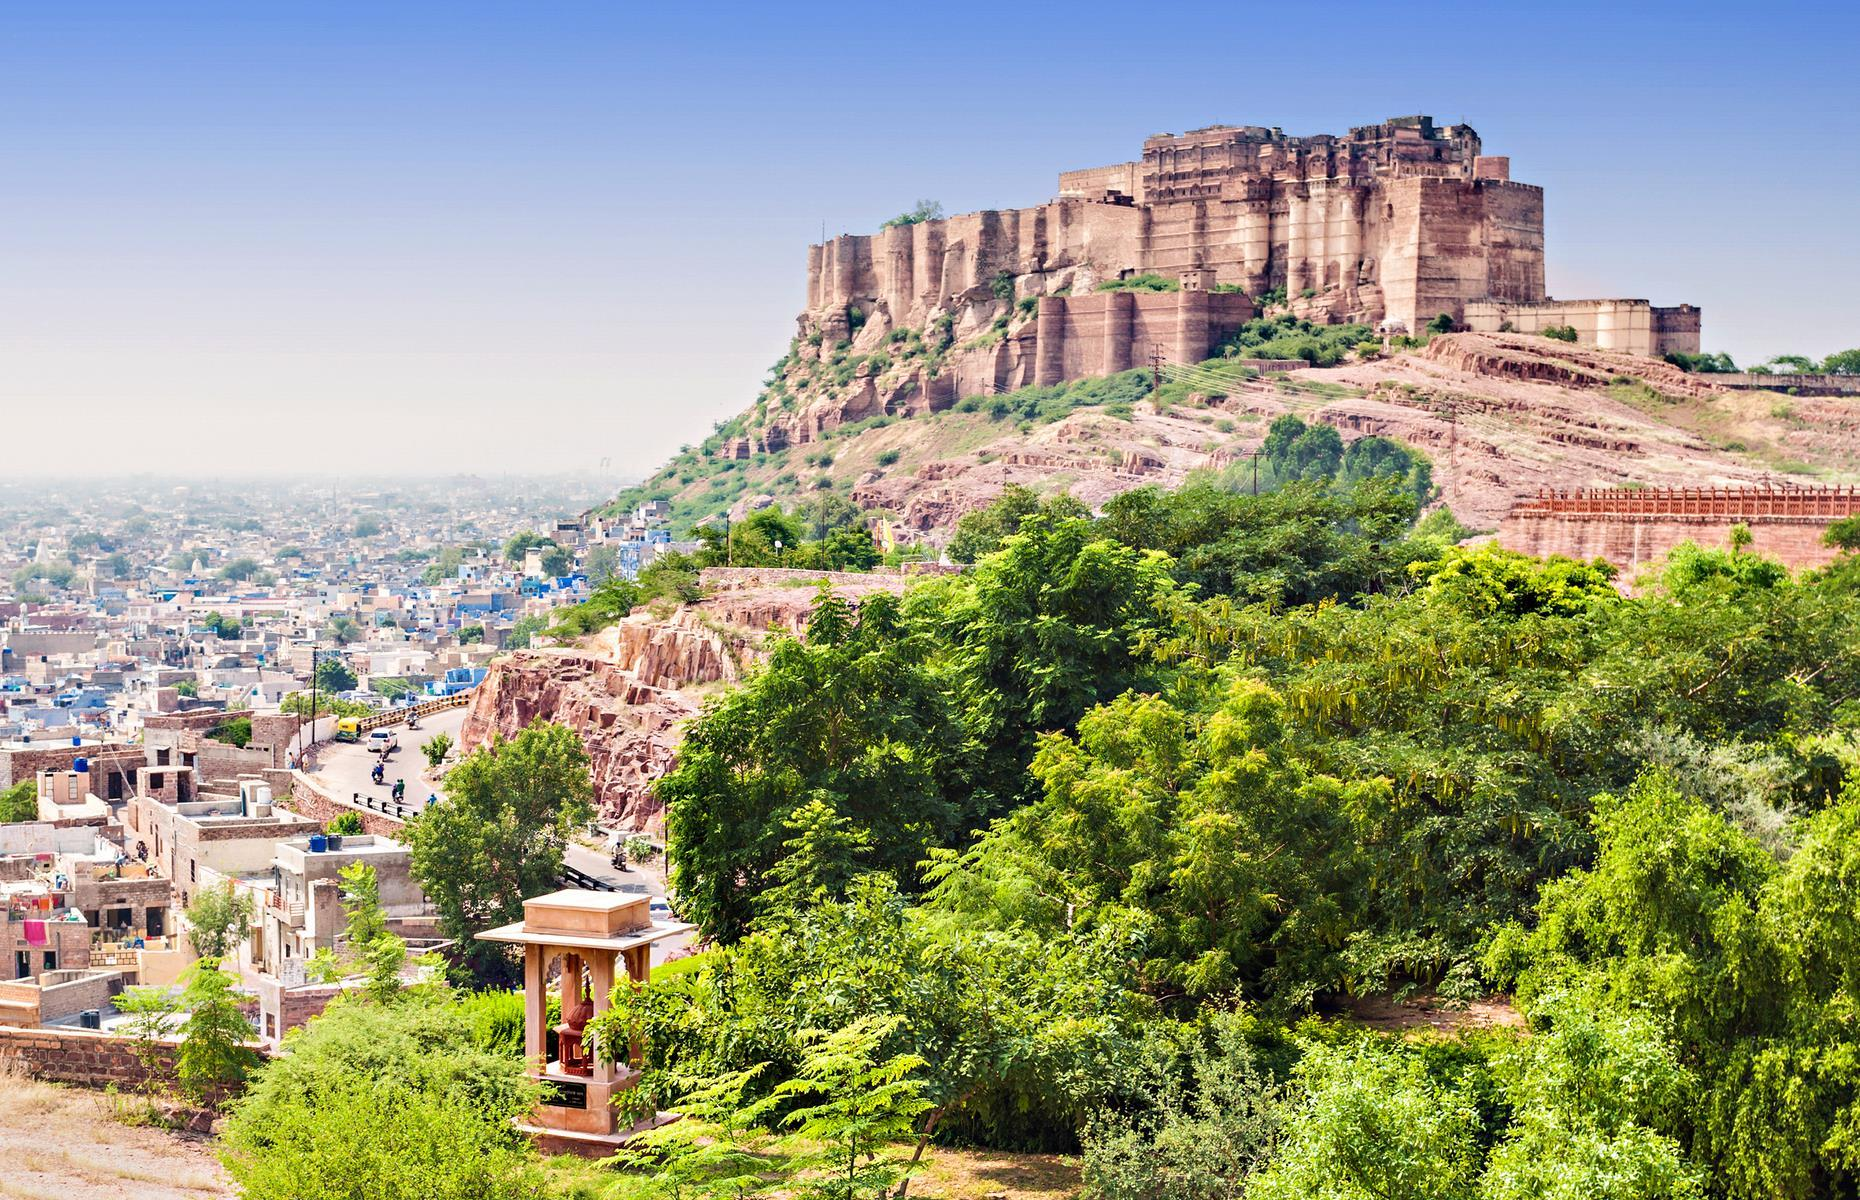 Slide 10 of 61: Mehrangarh Fort has guarded the northwestern city of Jodhpur since 1459. Built by Rao Jodha, the Rajasthani ruler who founded Jodhpur, the fort is built atop a rugged hill that soars some 400 feet (122m) above the land below.